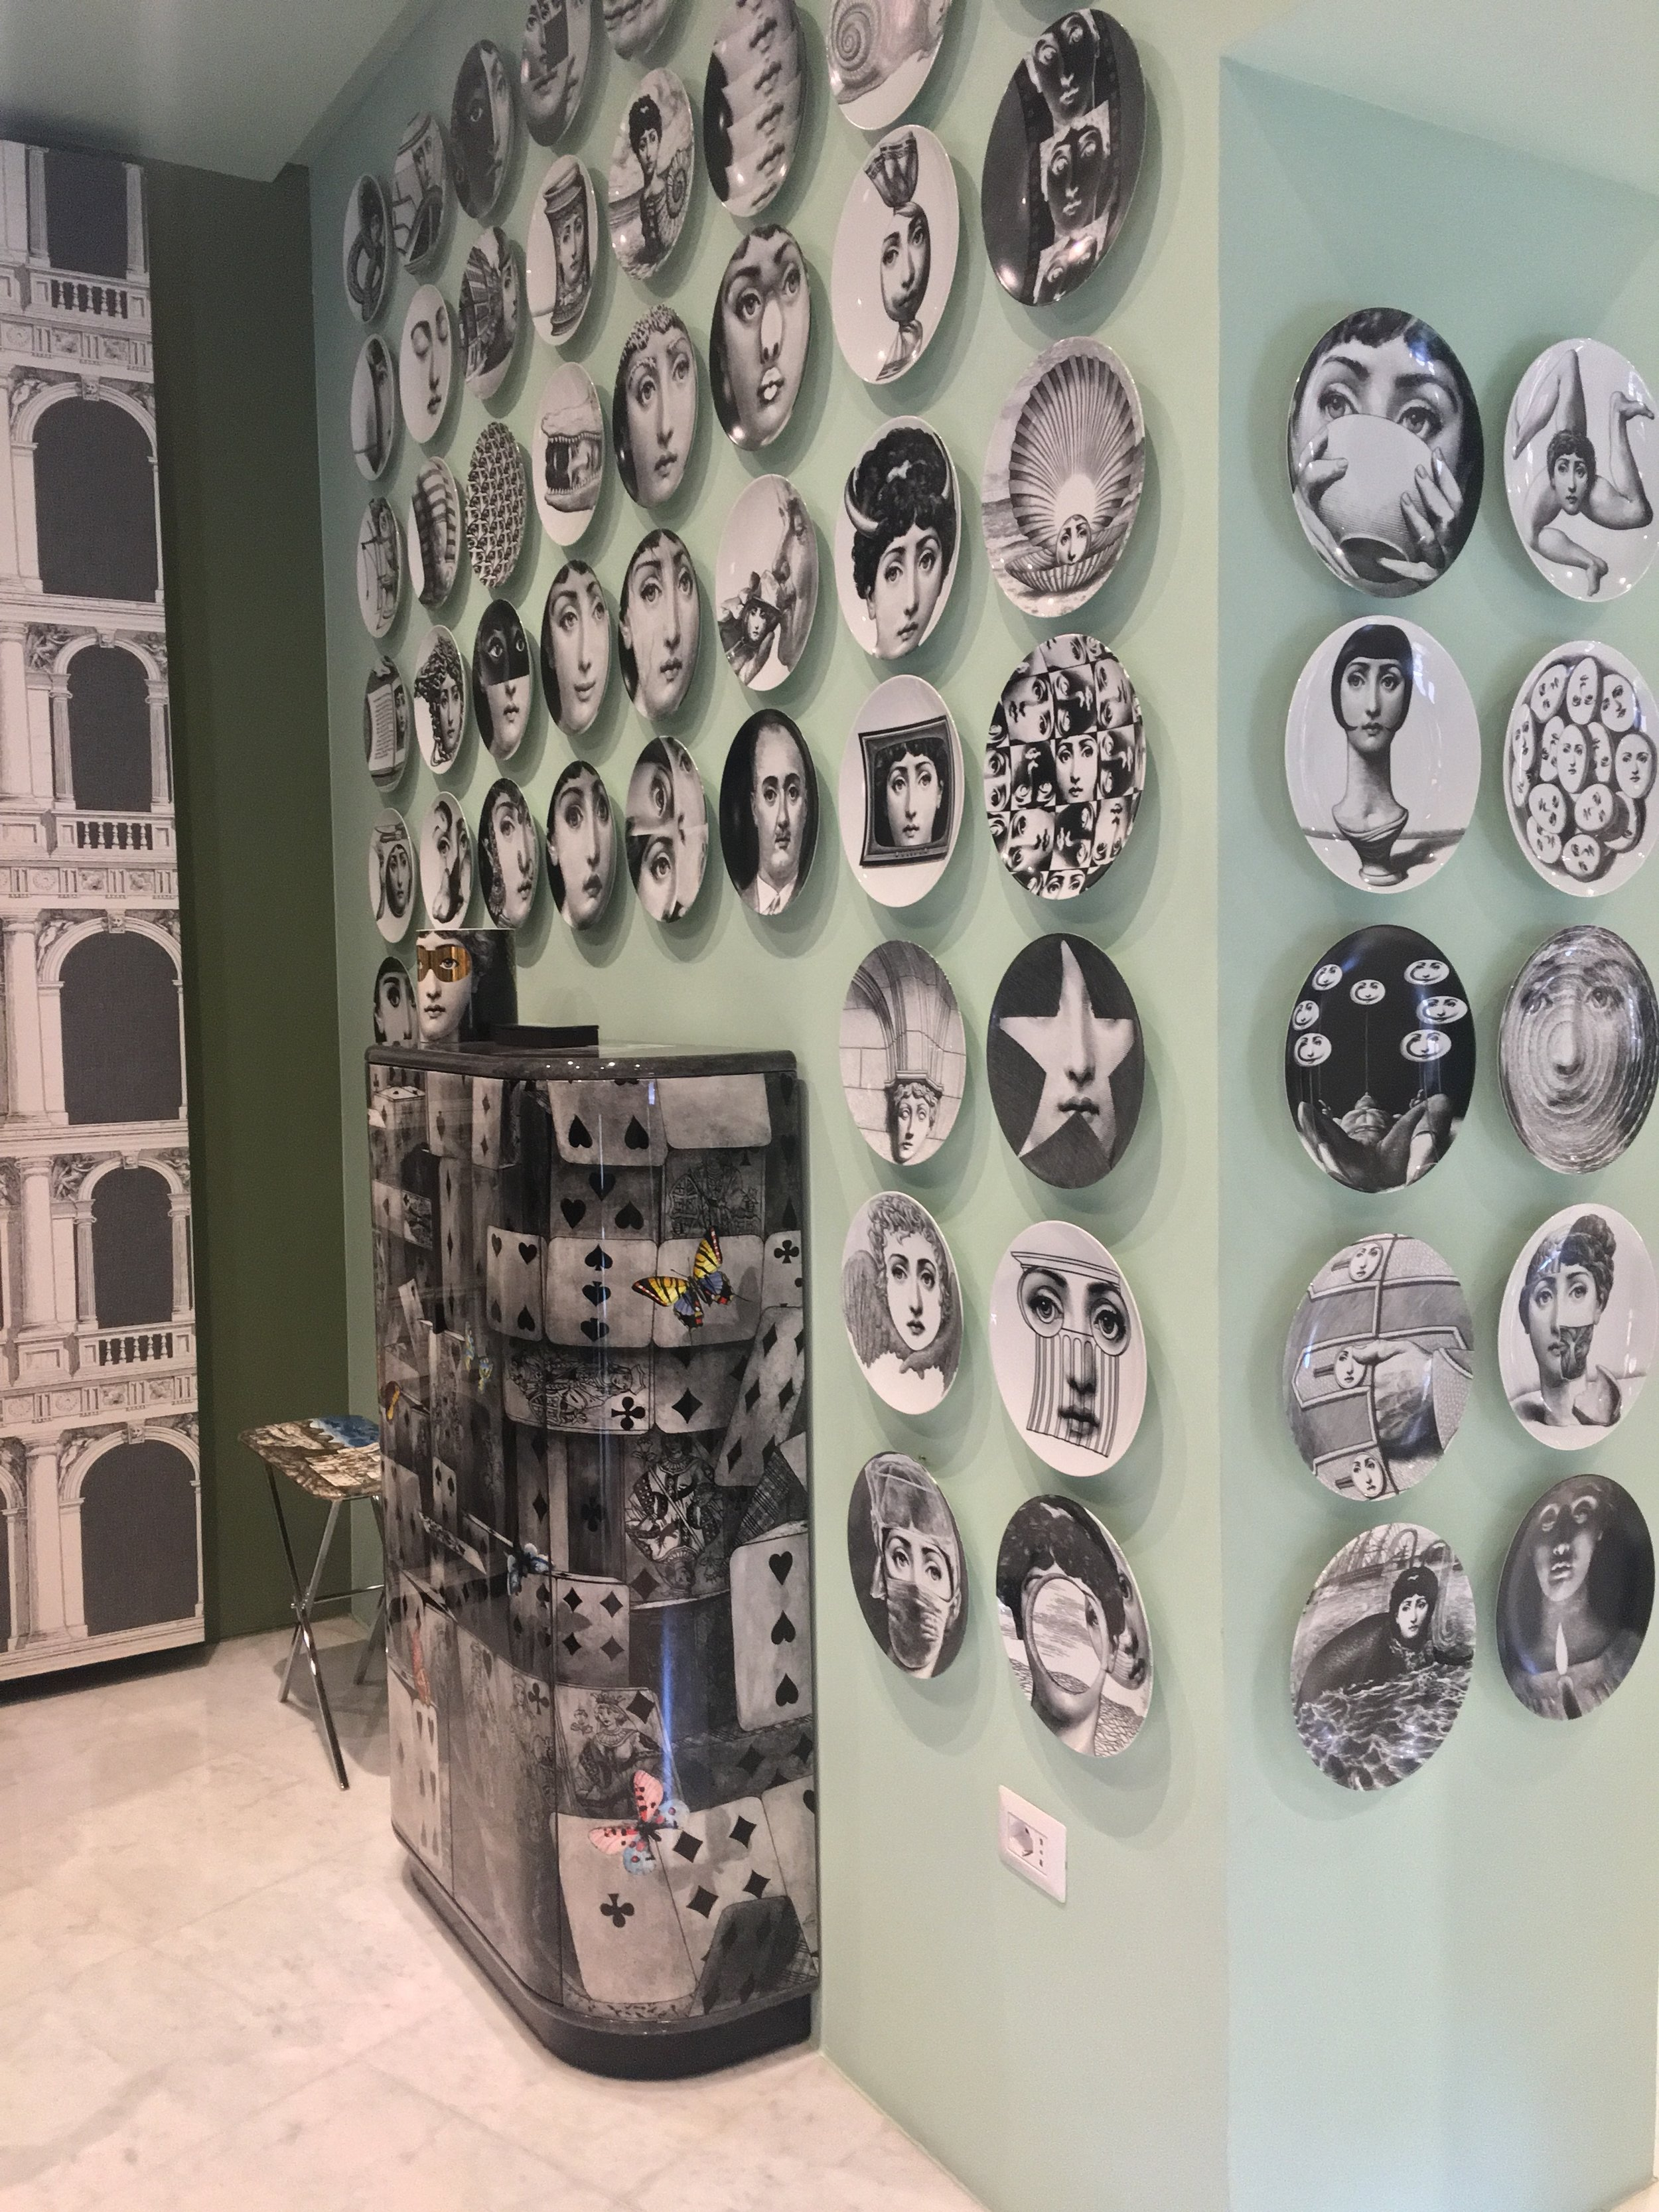 Fornasetti goodness in store.